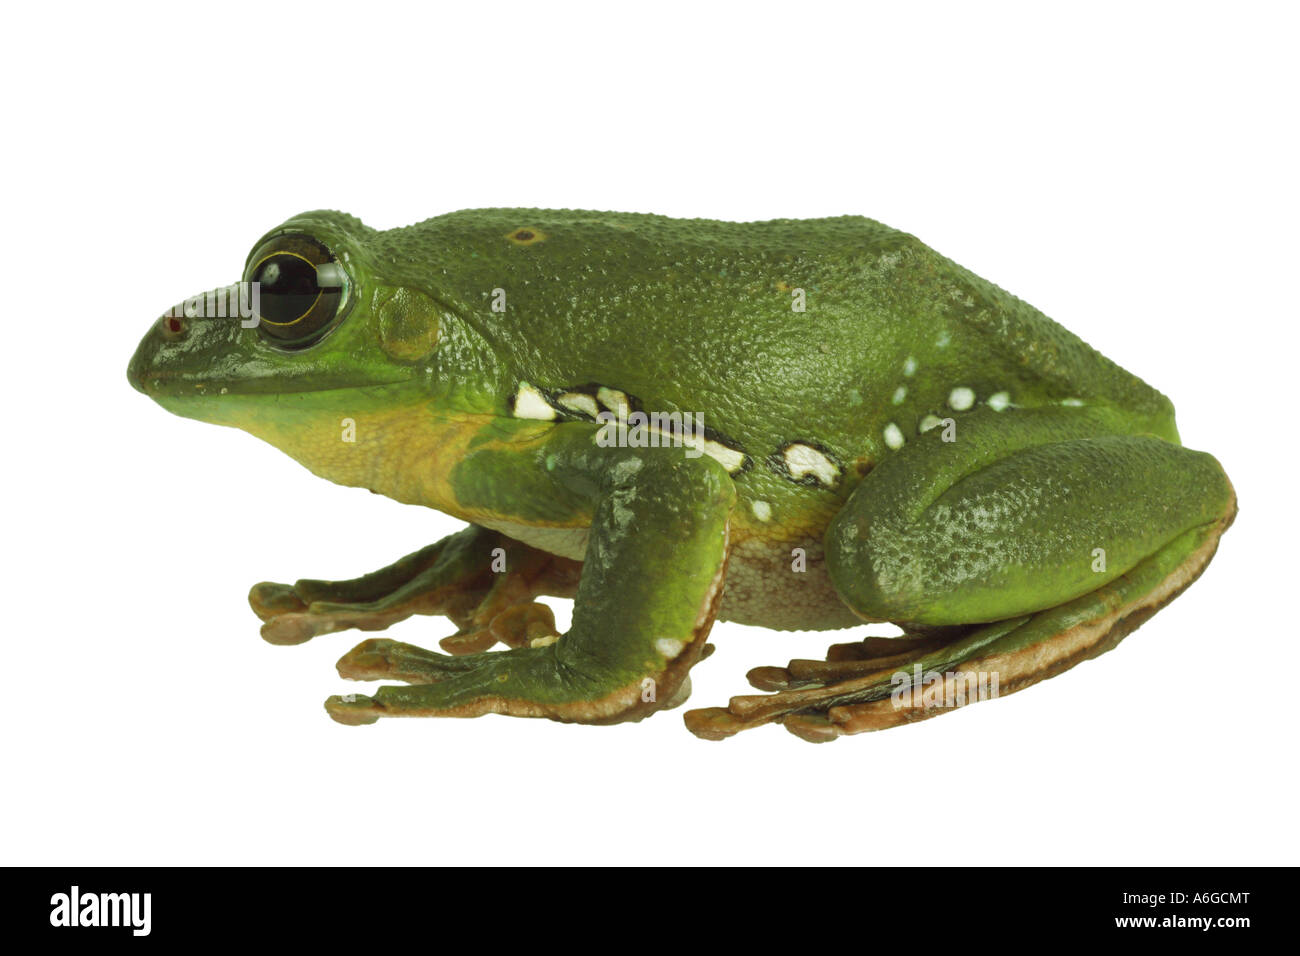 Blanford's whipping frog, asian gliding tree frog,  asian gliding treefrog (Rhacophorus dennysi) Stock Photo